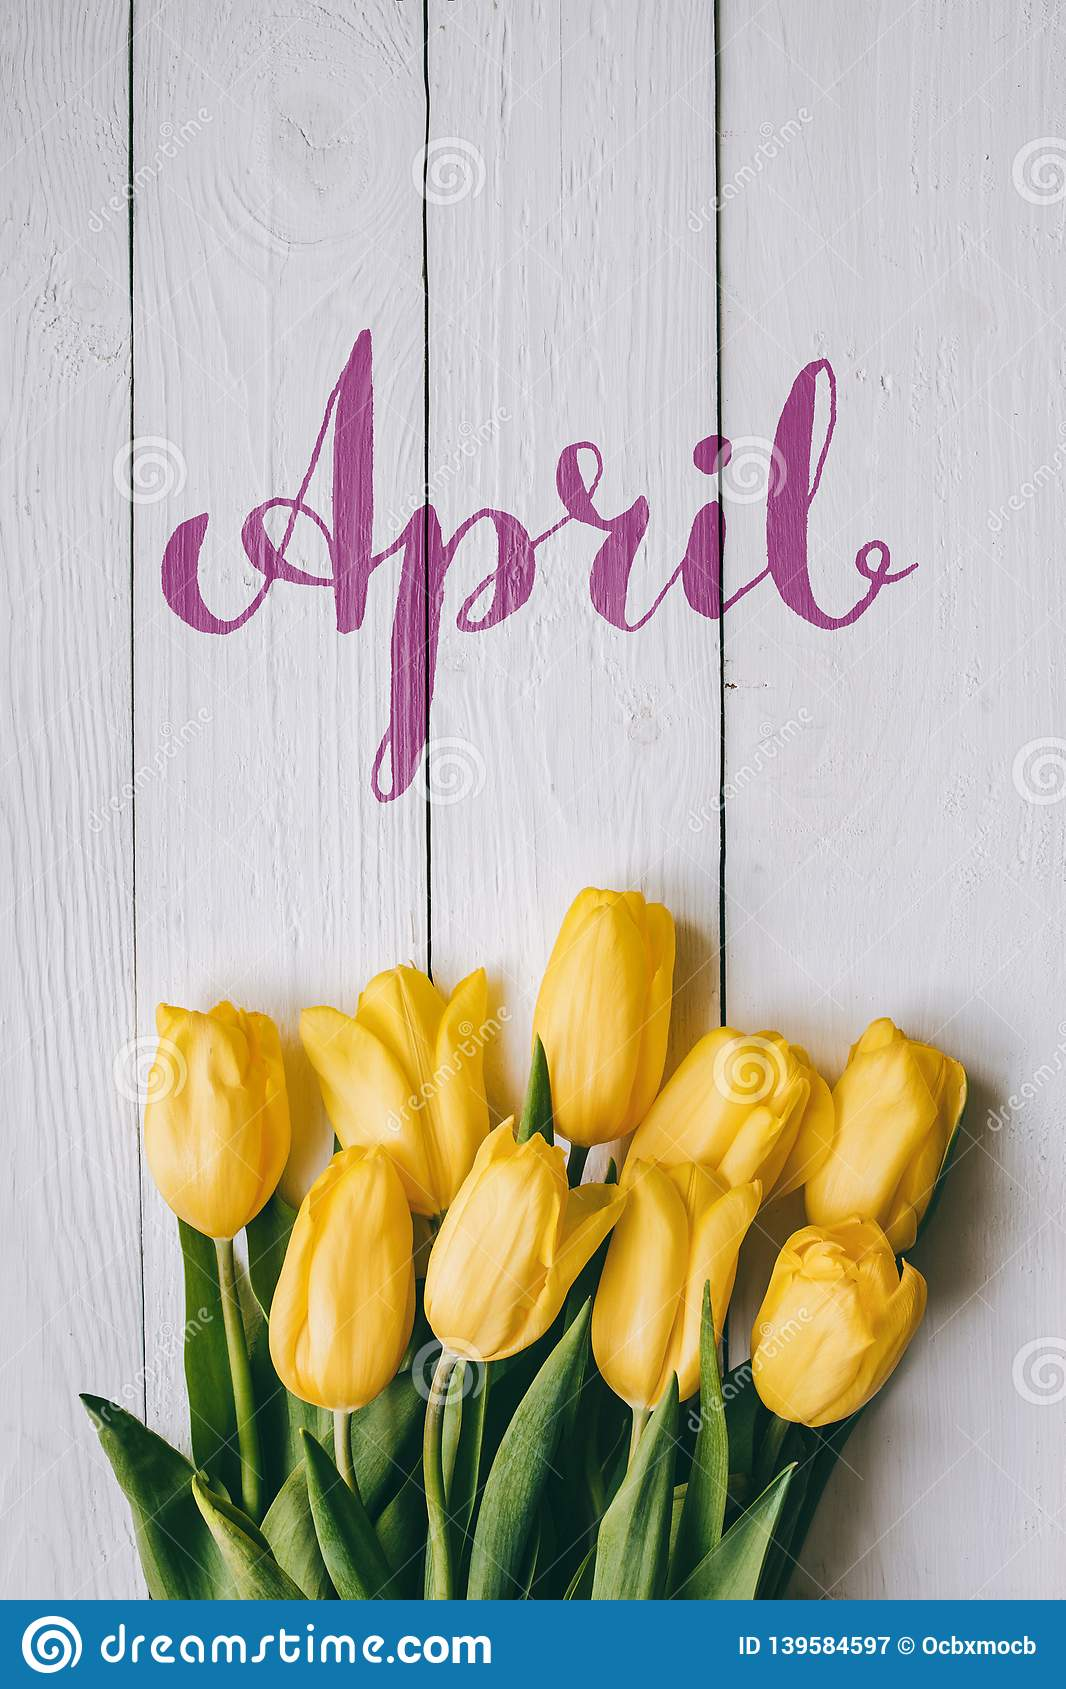 April hand lettering calligraphy. Yellow tulips bunch on white wooden planks rustic barn rural table background. Letters,